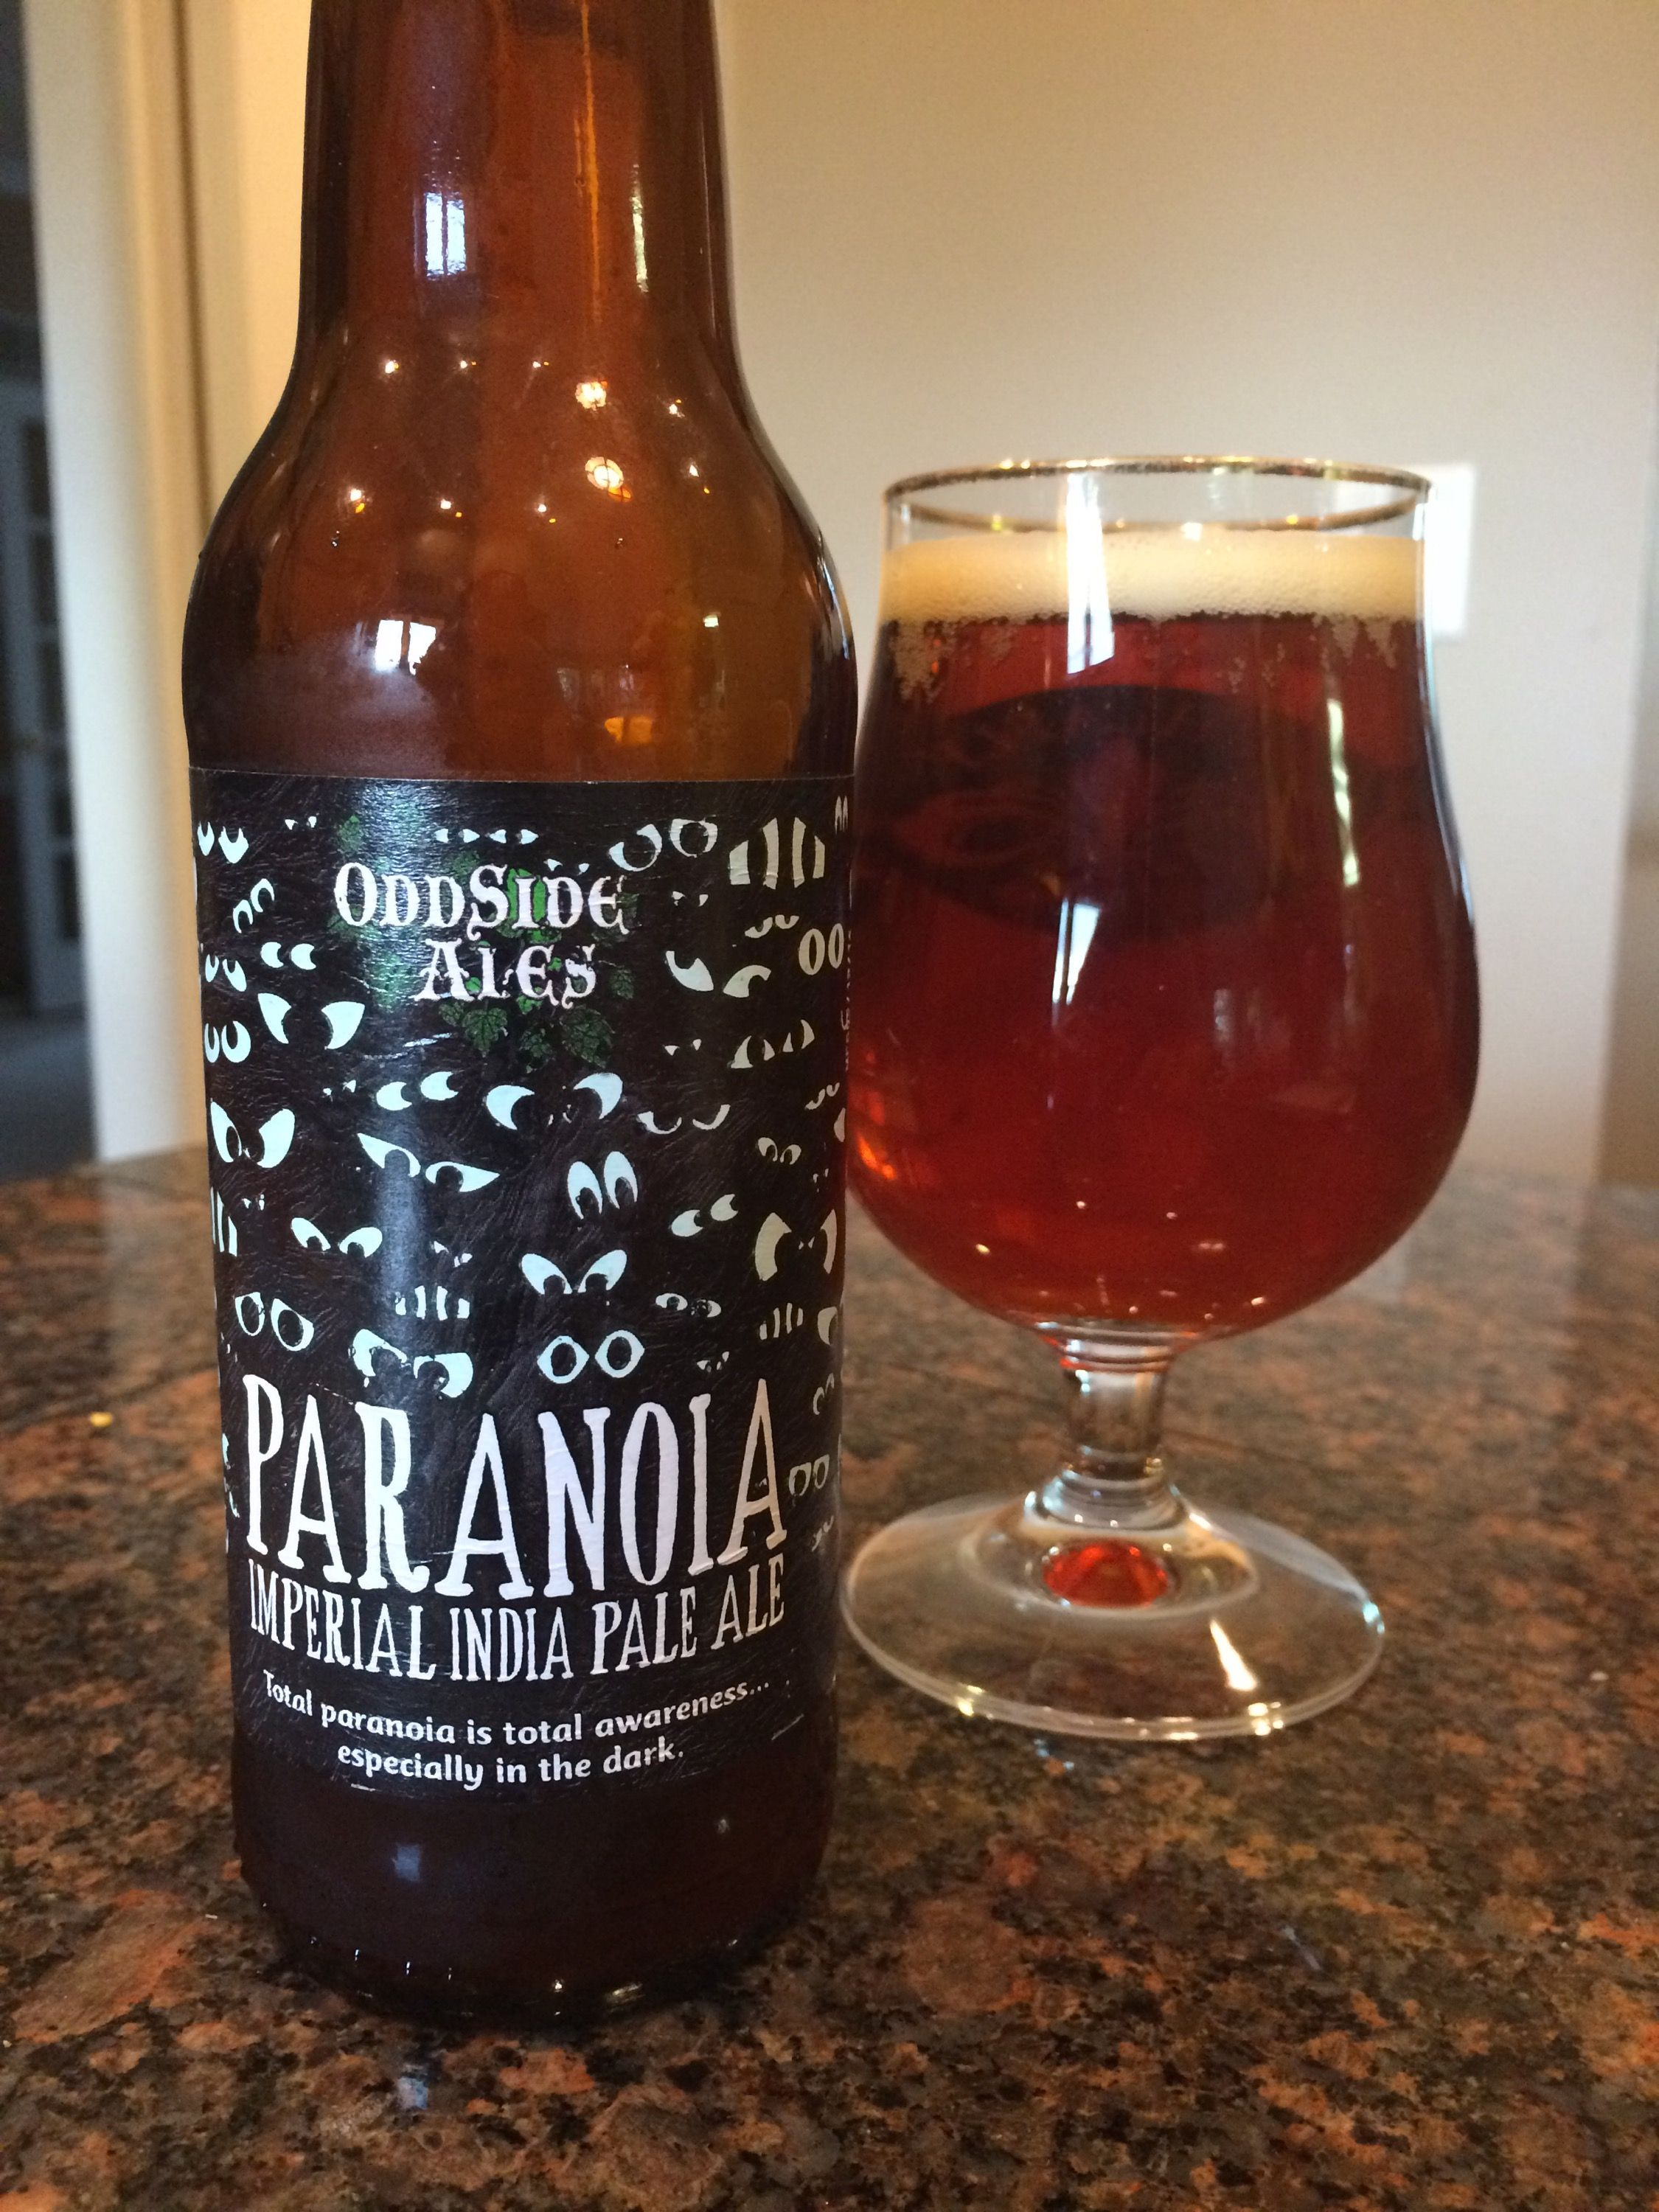 767 Oddside Ales Paranoia Imperial India Pale Ale India Pale Ale Pale Ale Beer Design